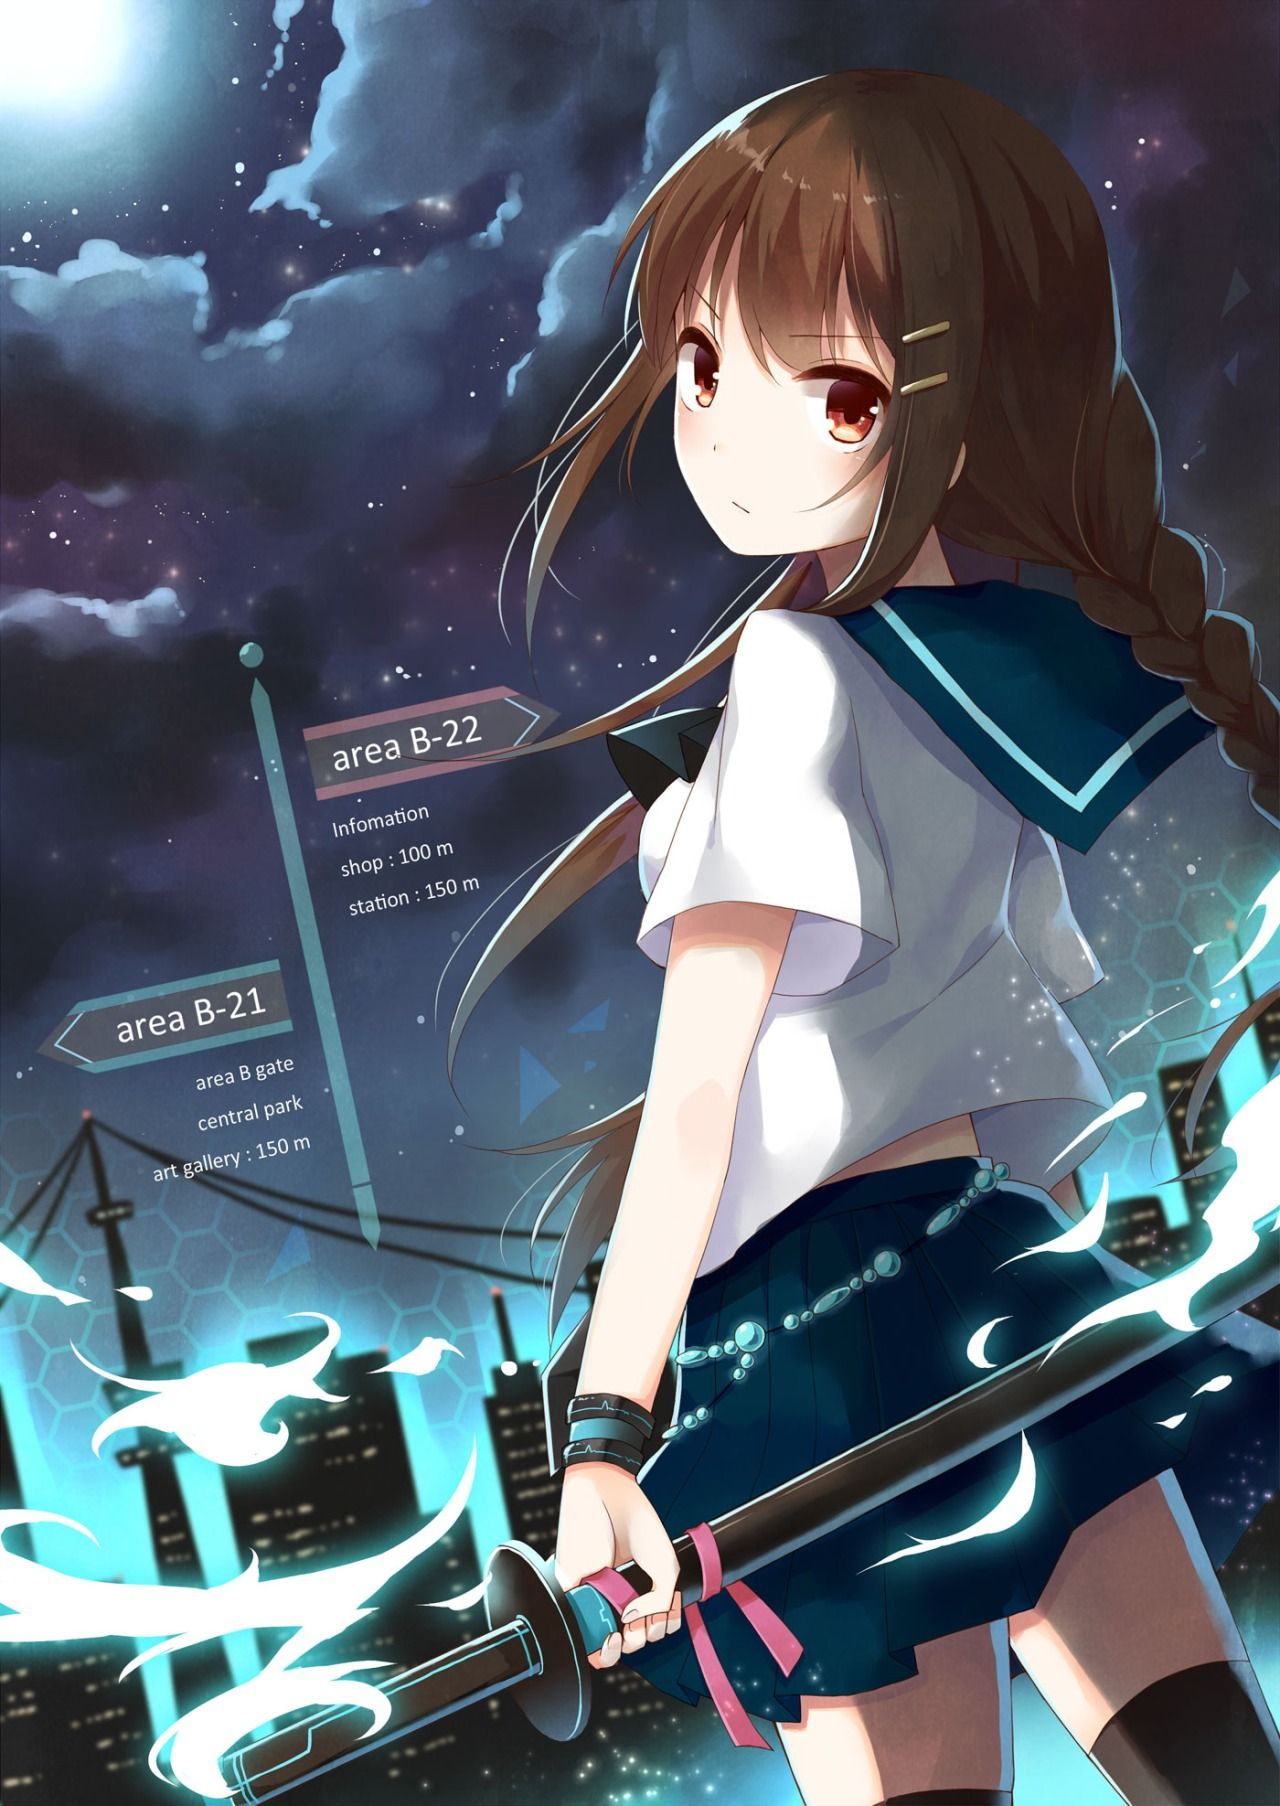 ANIME ART sword. . .katana. . .weapon. . .school uniform